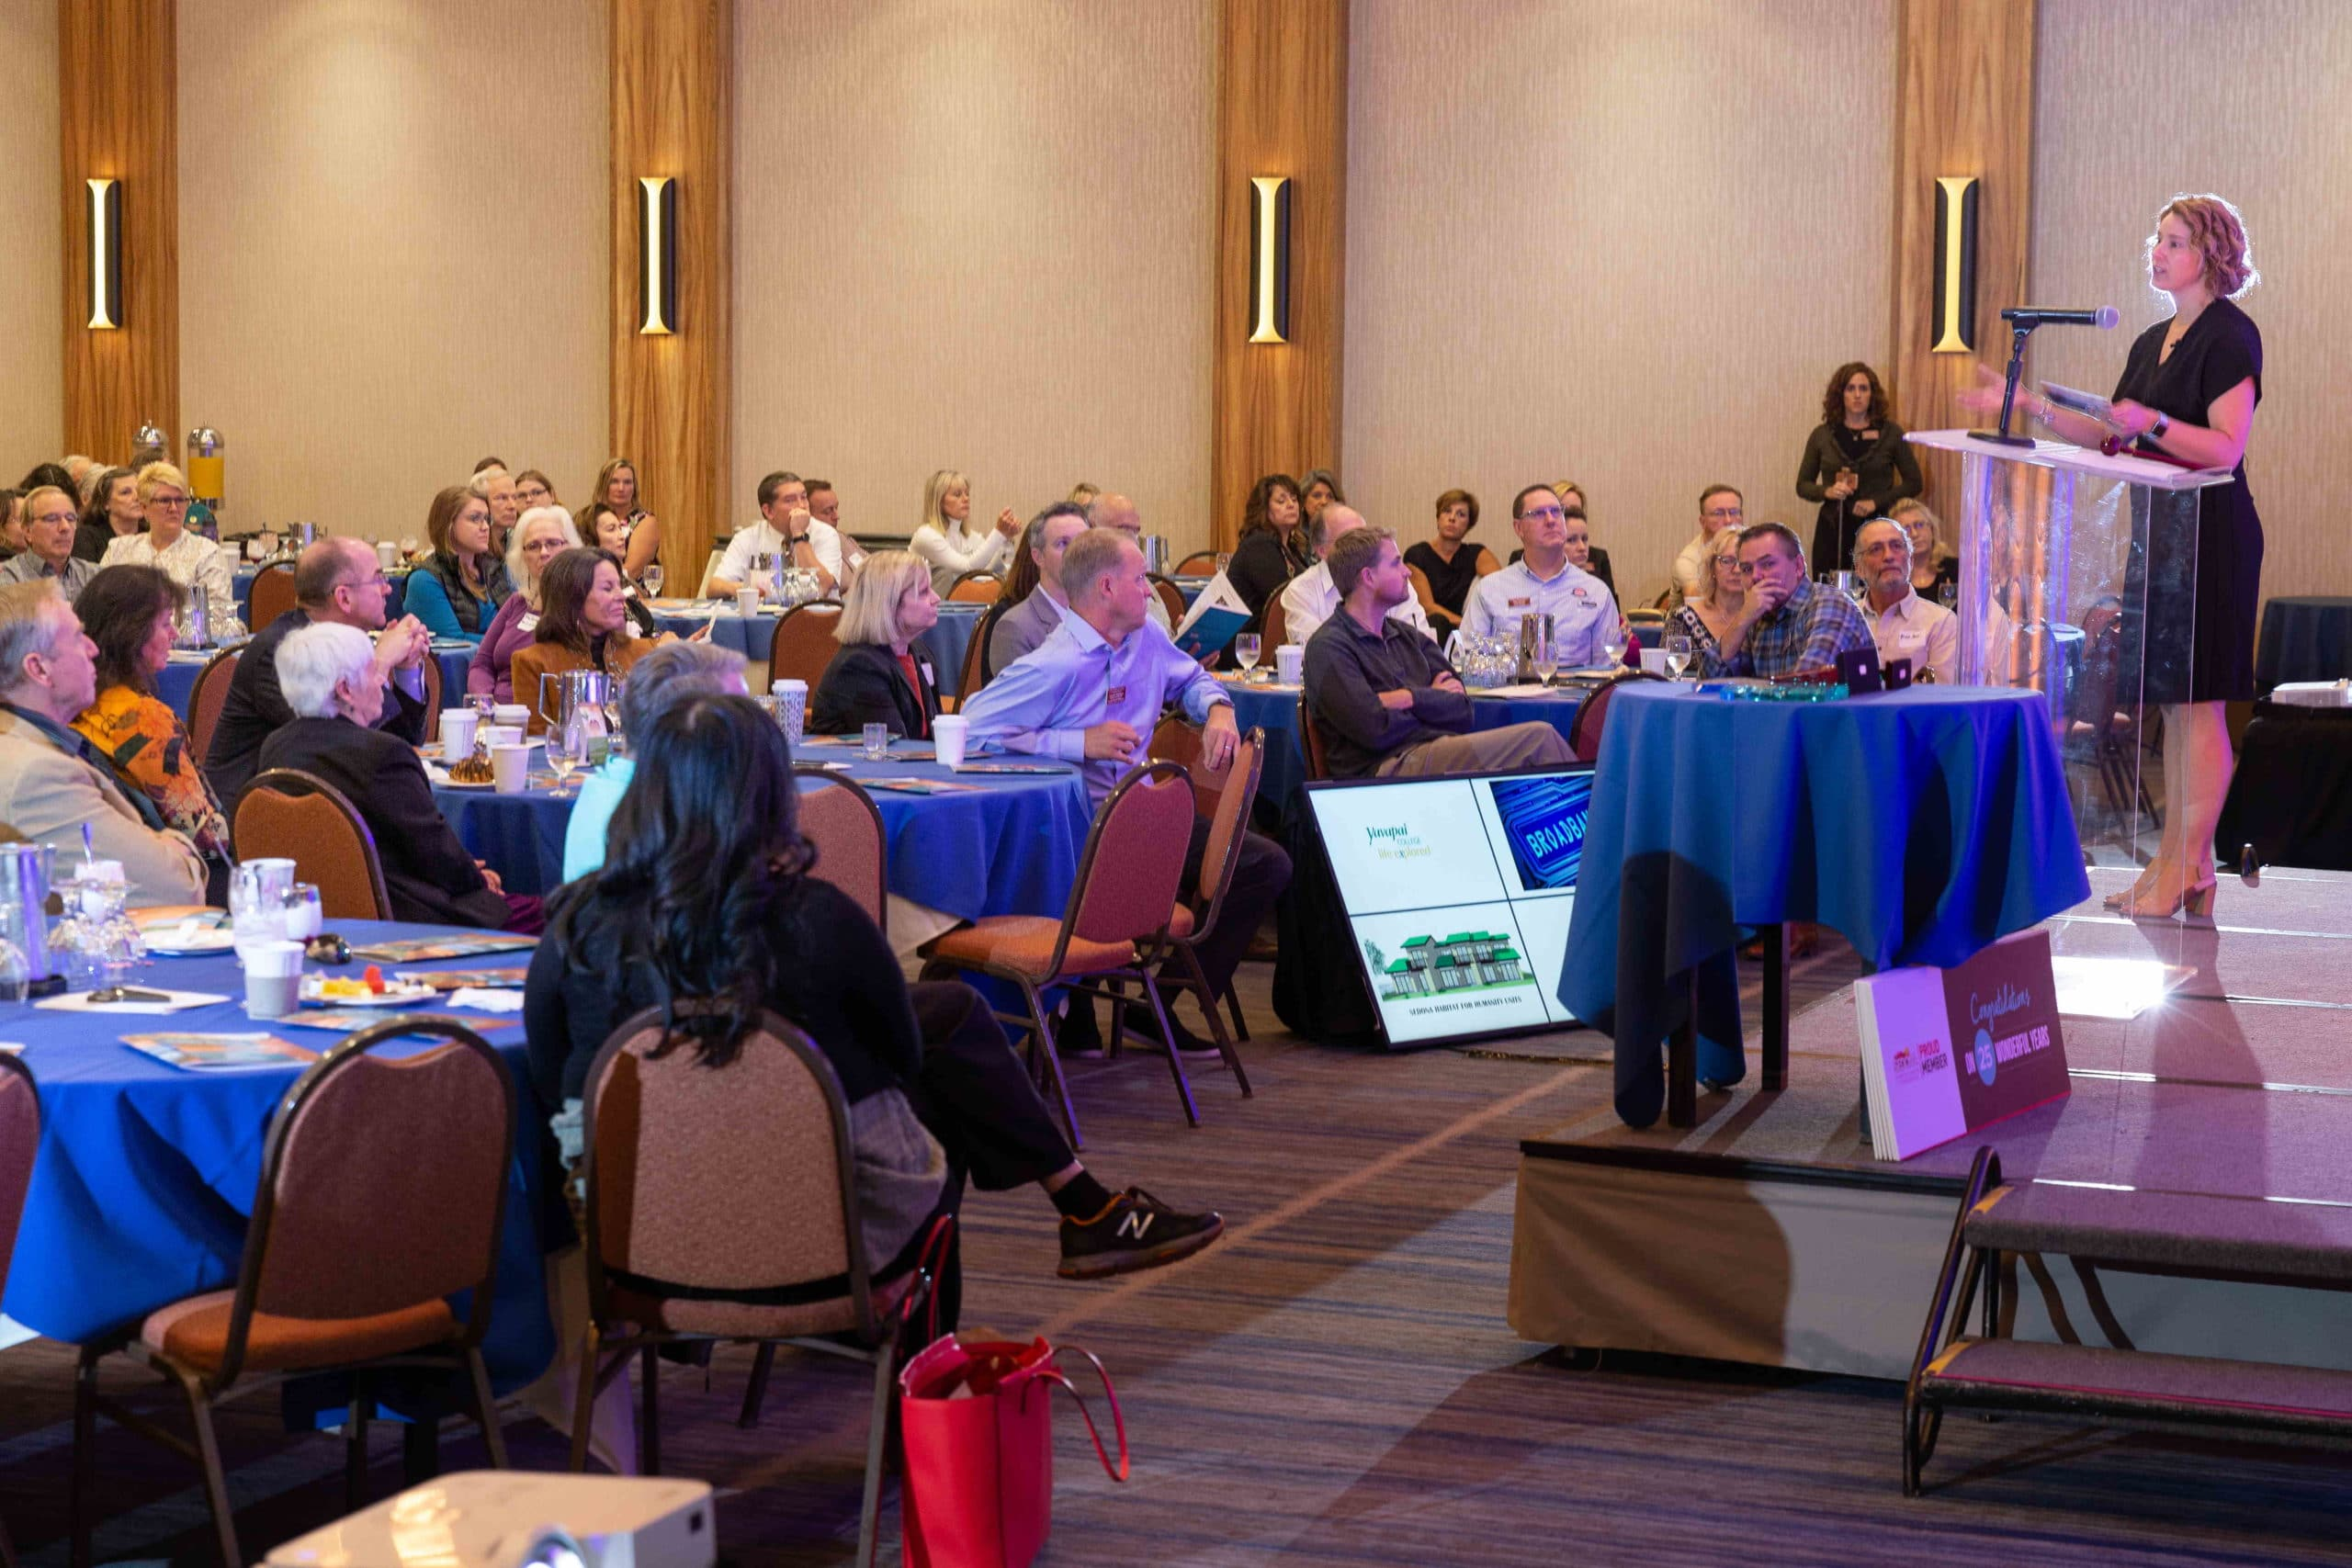 Chamber CEO speaks about challenges of tourism in Sedona